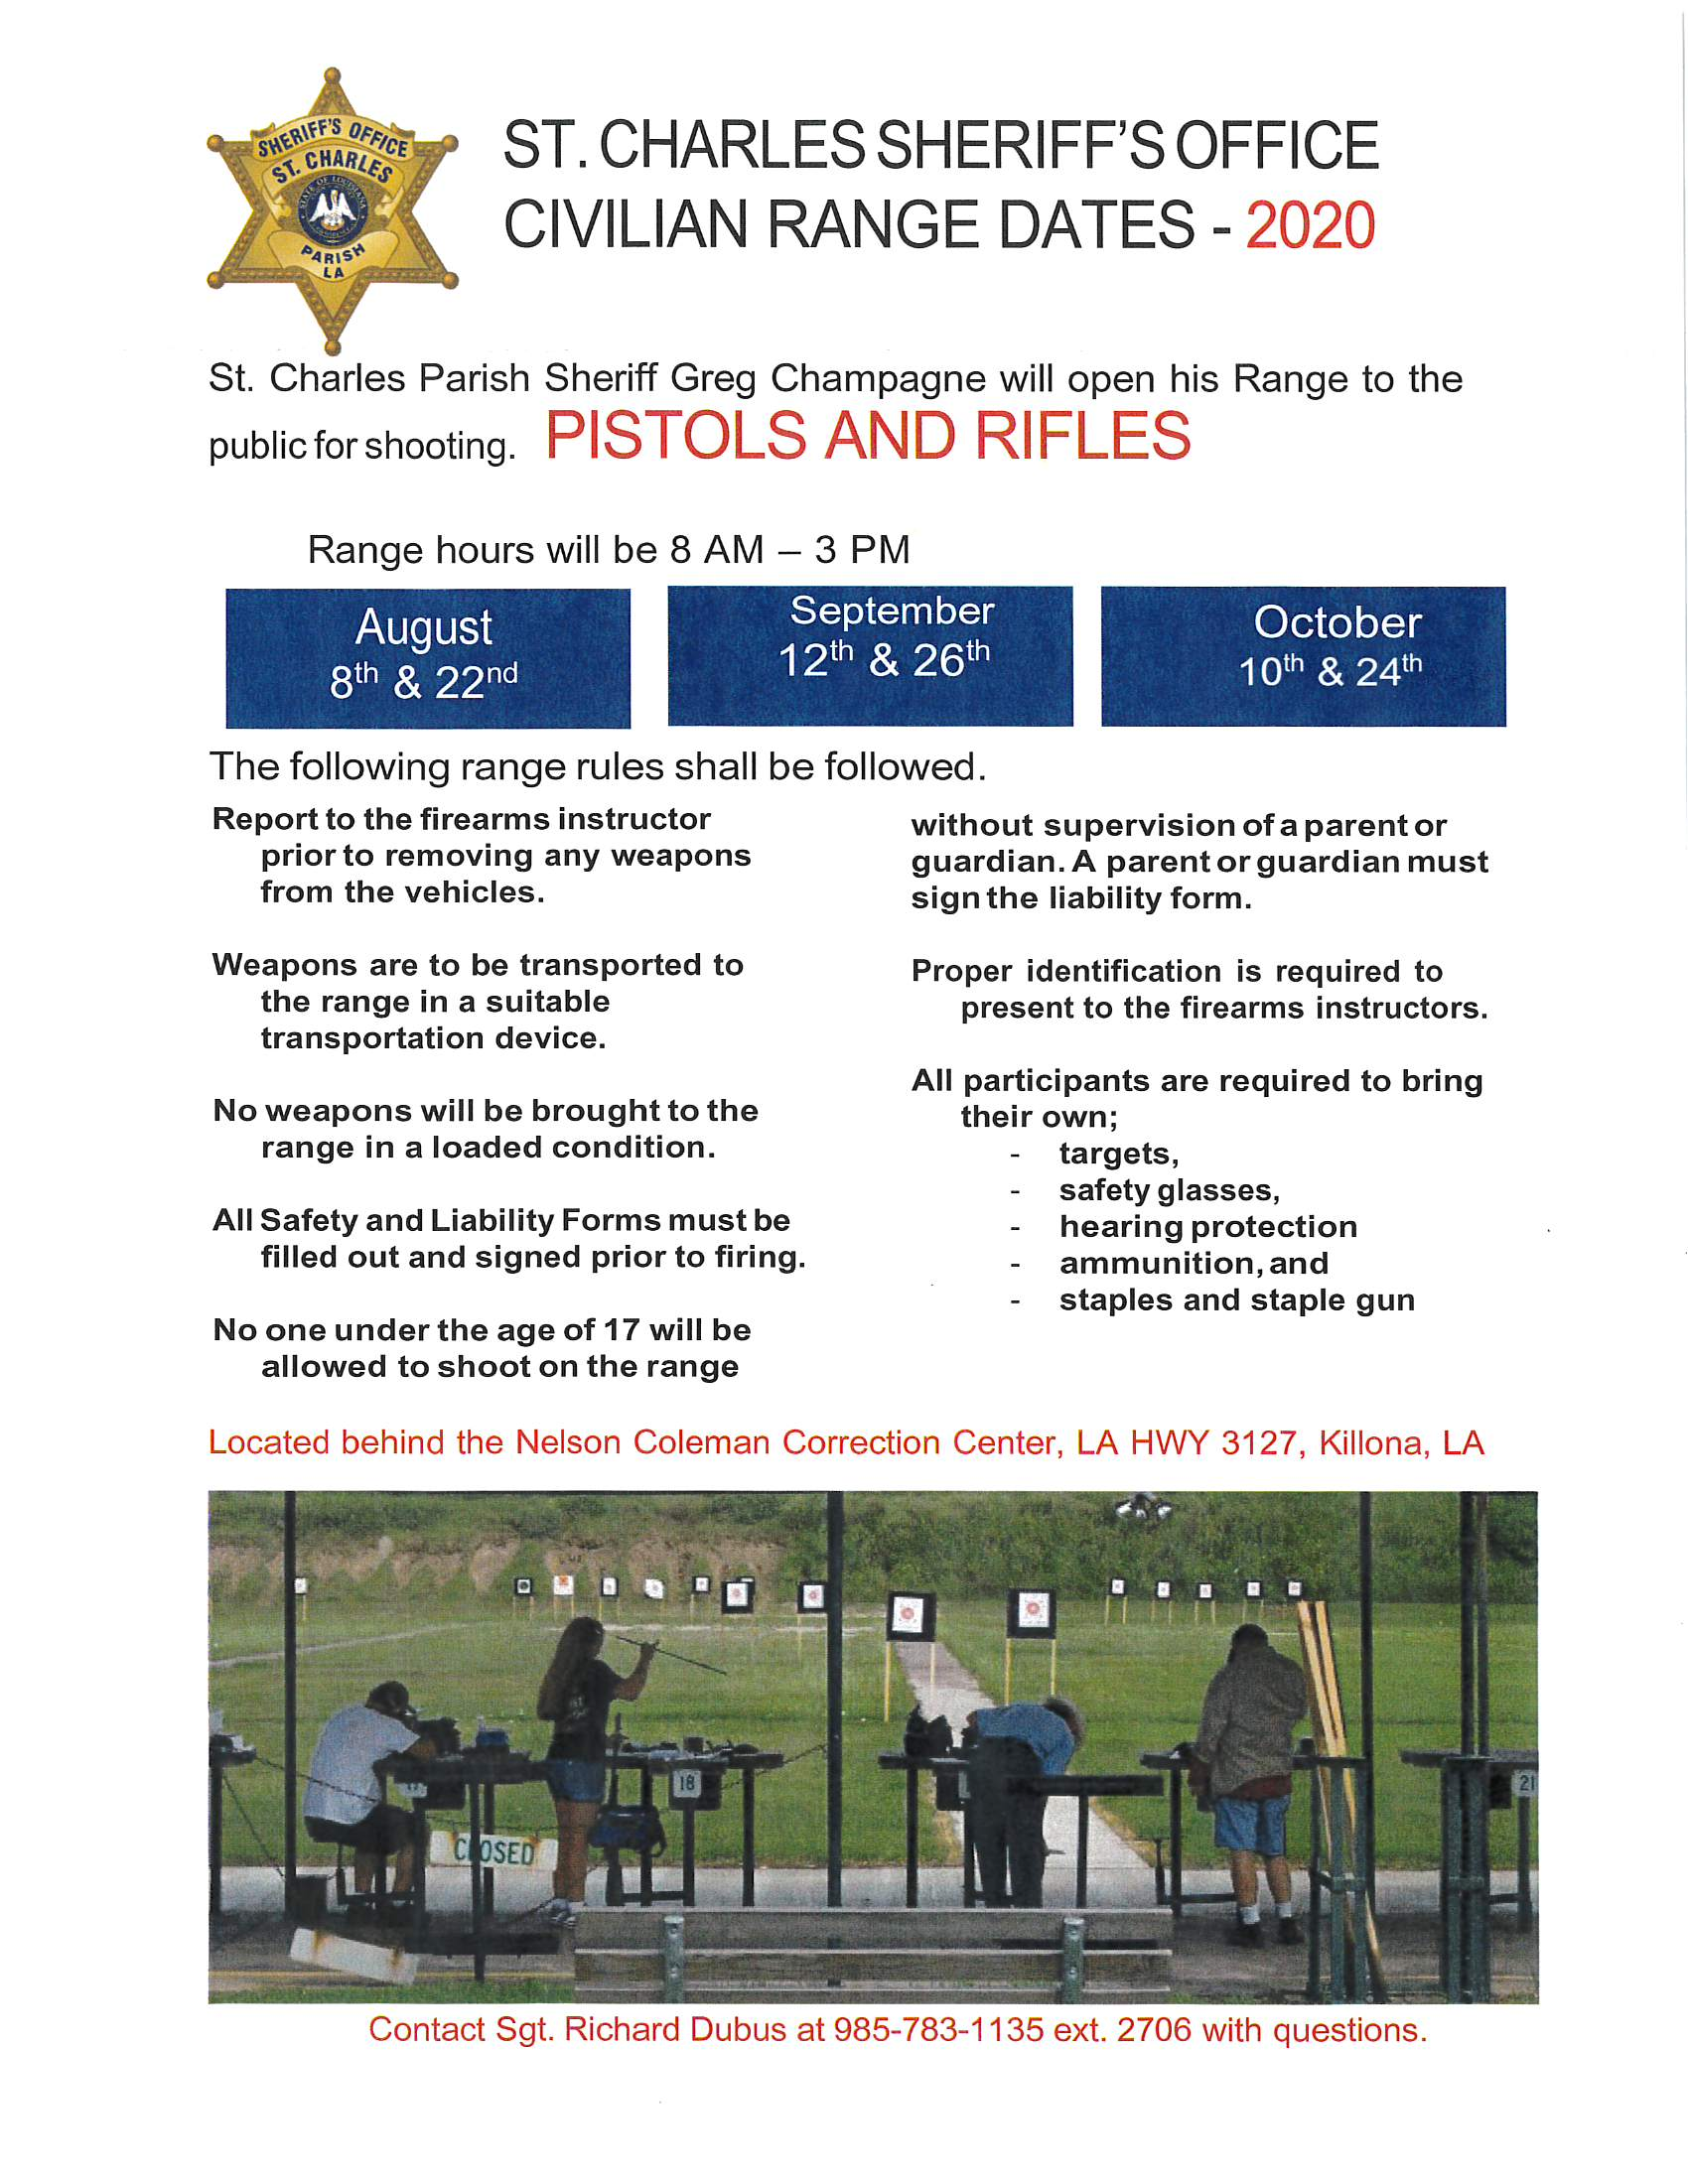 August 2020 Civilian Range day